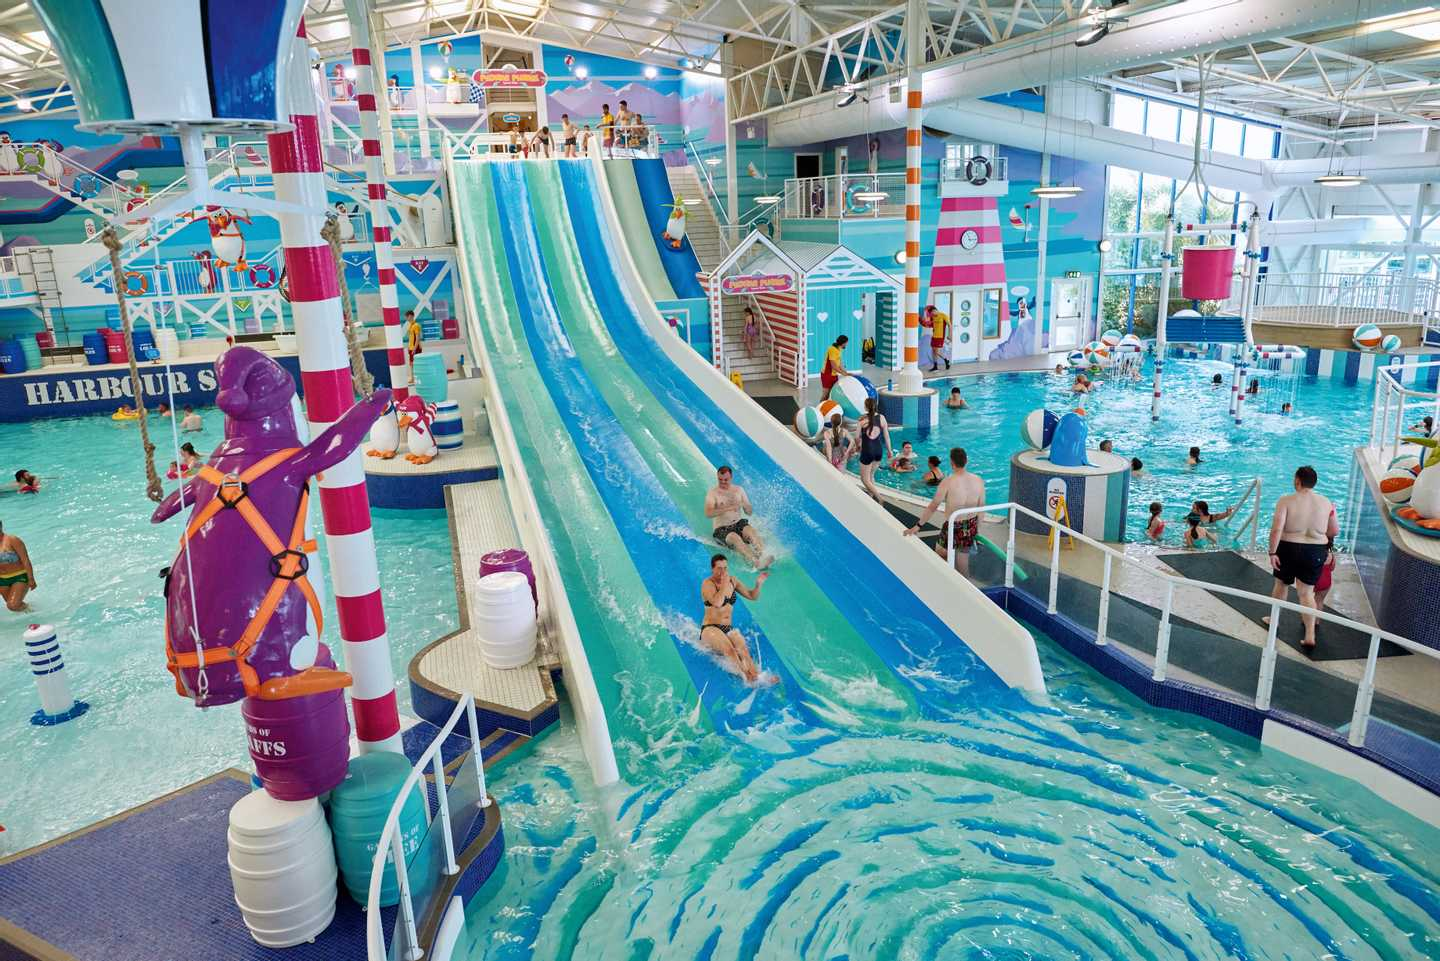 Families sliding down the 4-lane water slide in the heated indoor pool at Hafan y Môr